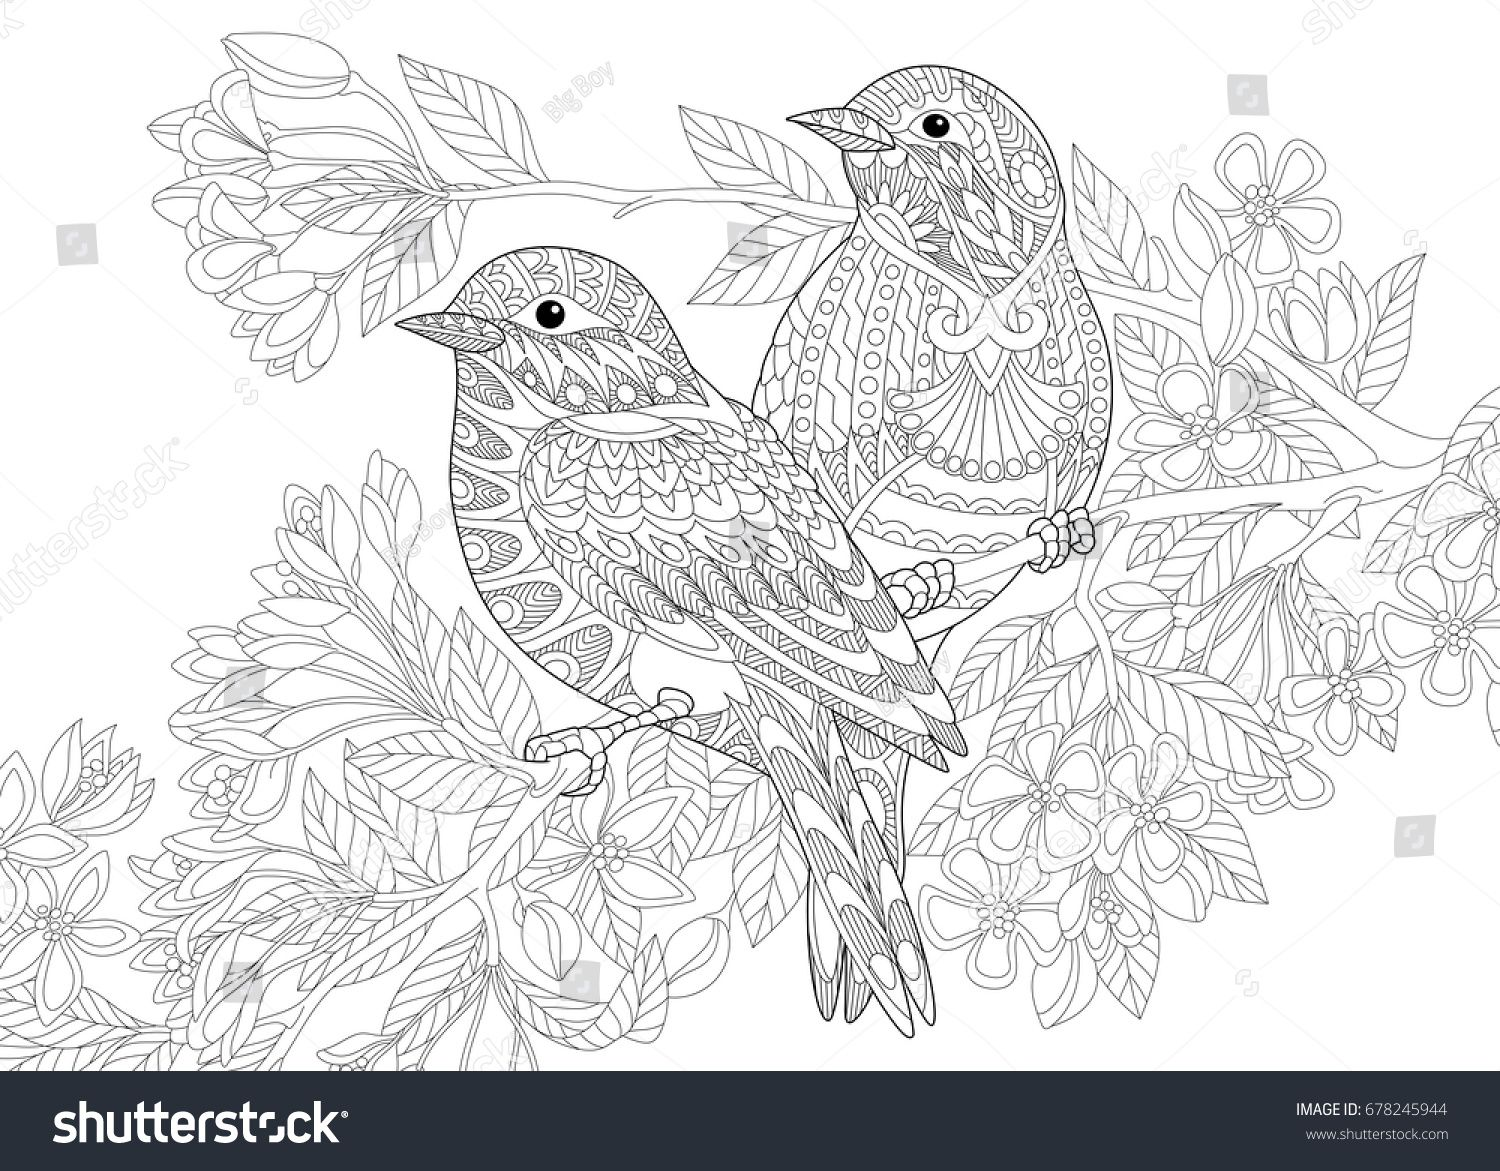 Coloring Page Of Two Birds Freehand Sketch Drawing For Adult